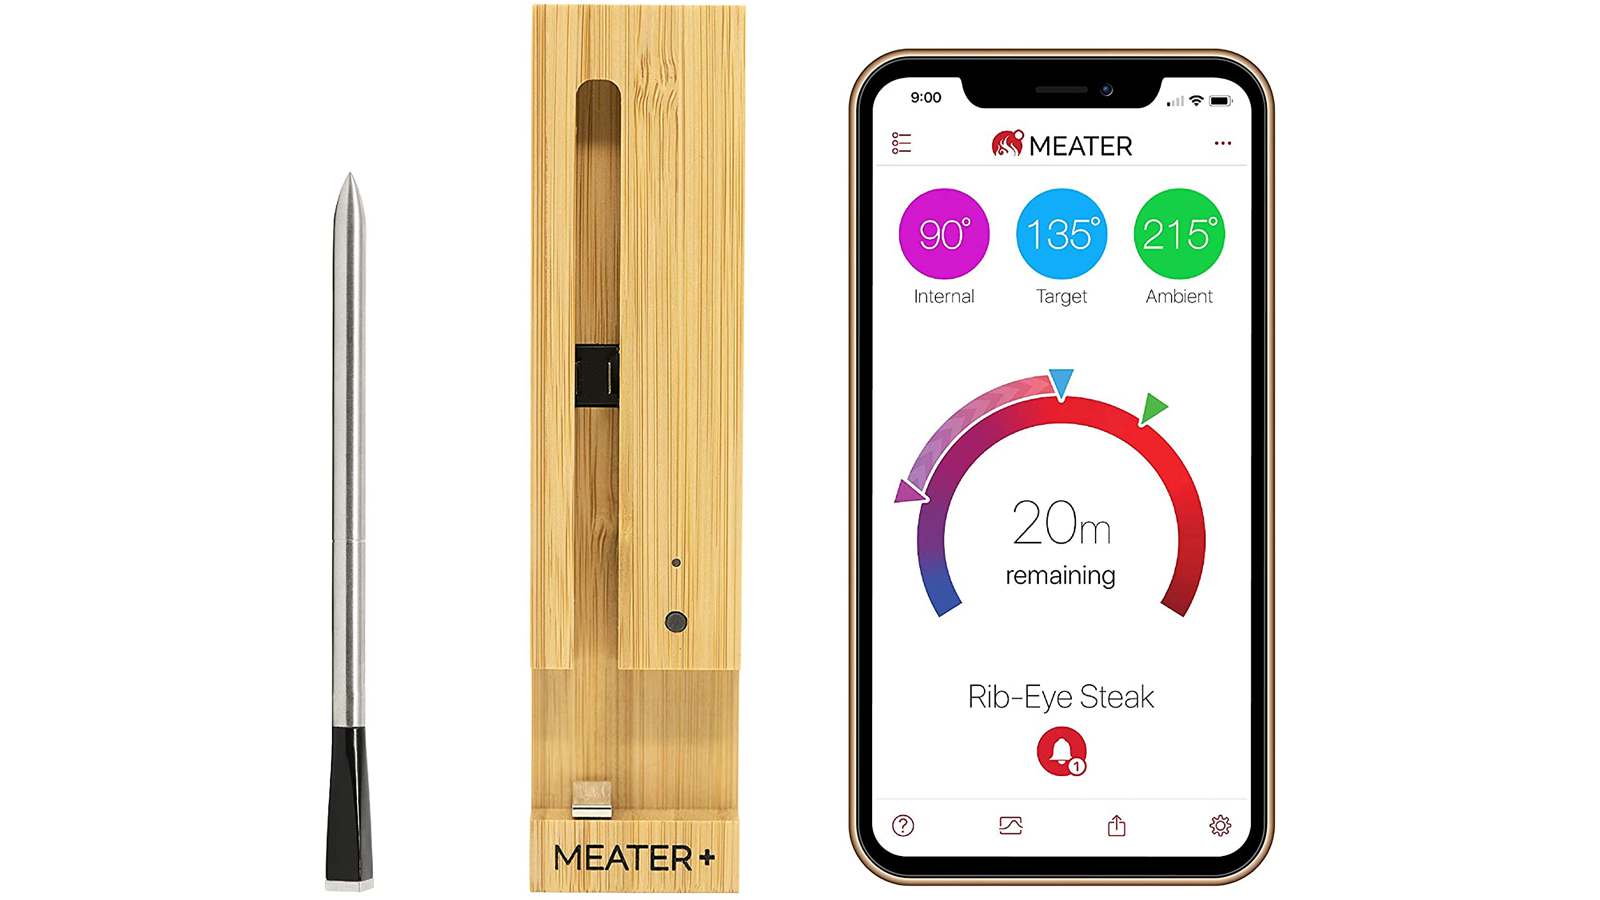 MEATER Smart Meat Thermometer and companion mobile app